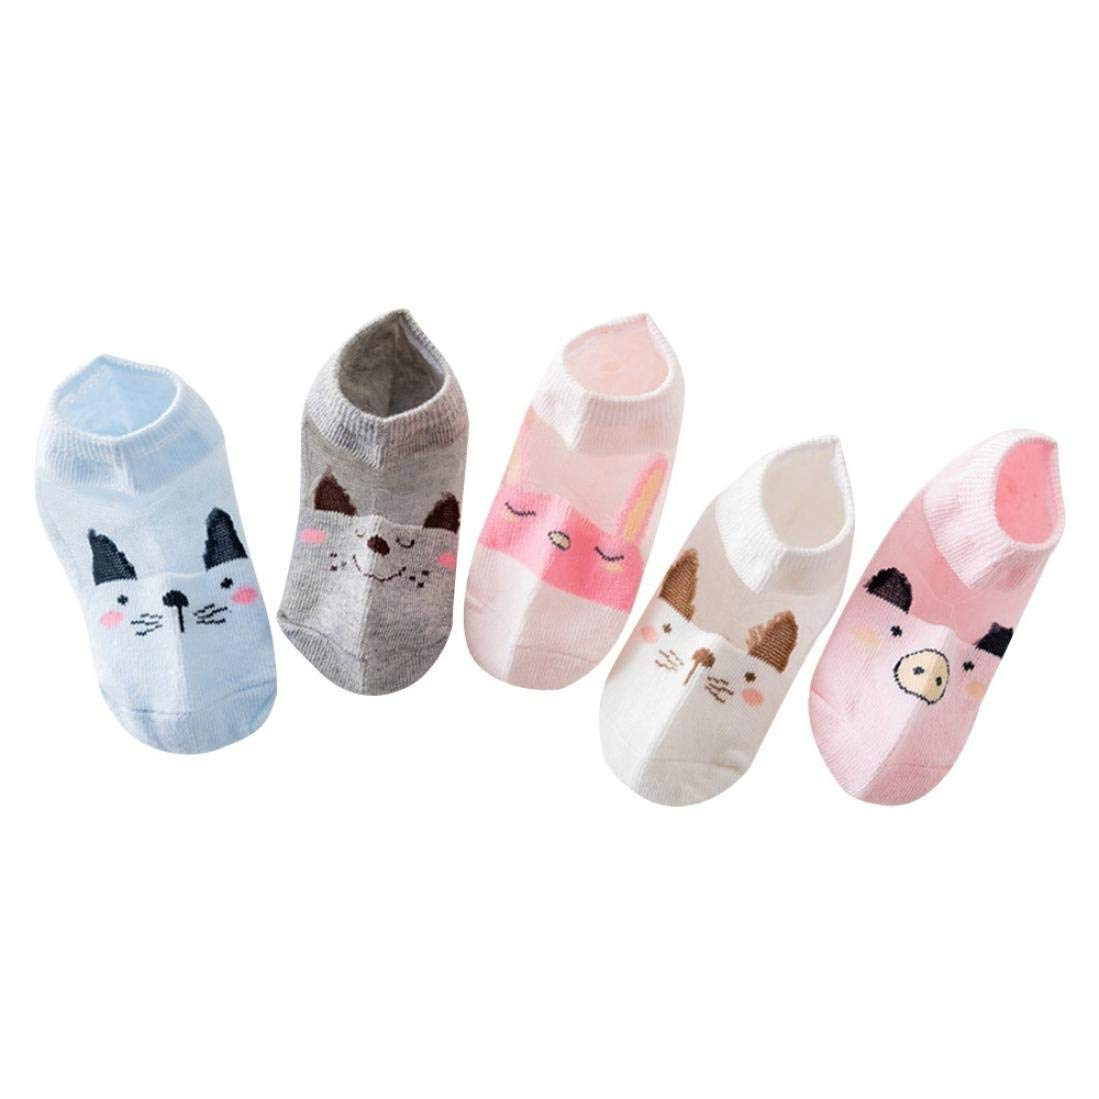 Baby Cute Cartoon Socks,Jchen(TM) 5Pair Baby Boys Girls Socks Cartoon Floor Socks Anti-Slip Baby Step Socks ((L) Length:16-18CM/6.2''-7.0'', Pink)